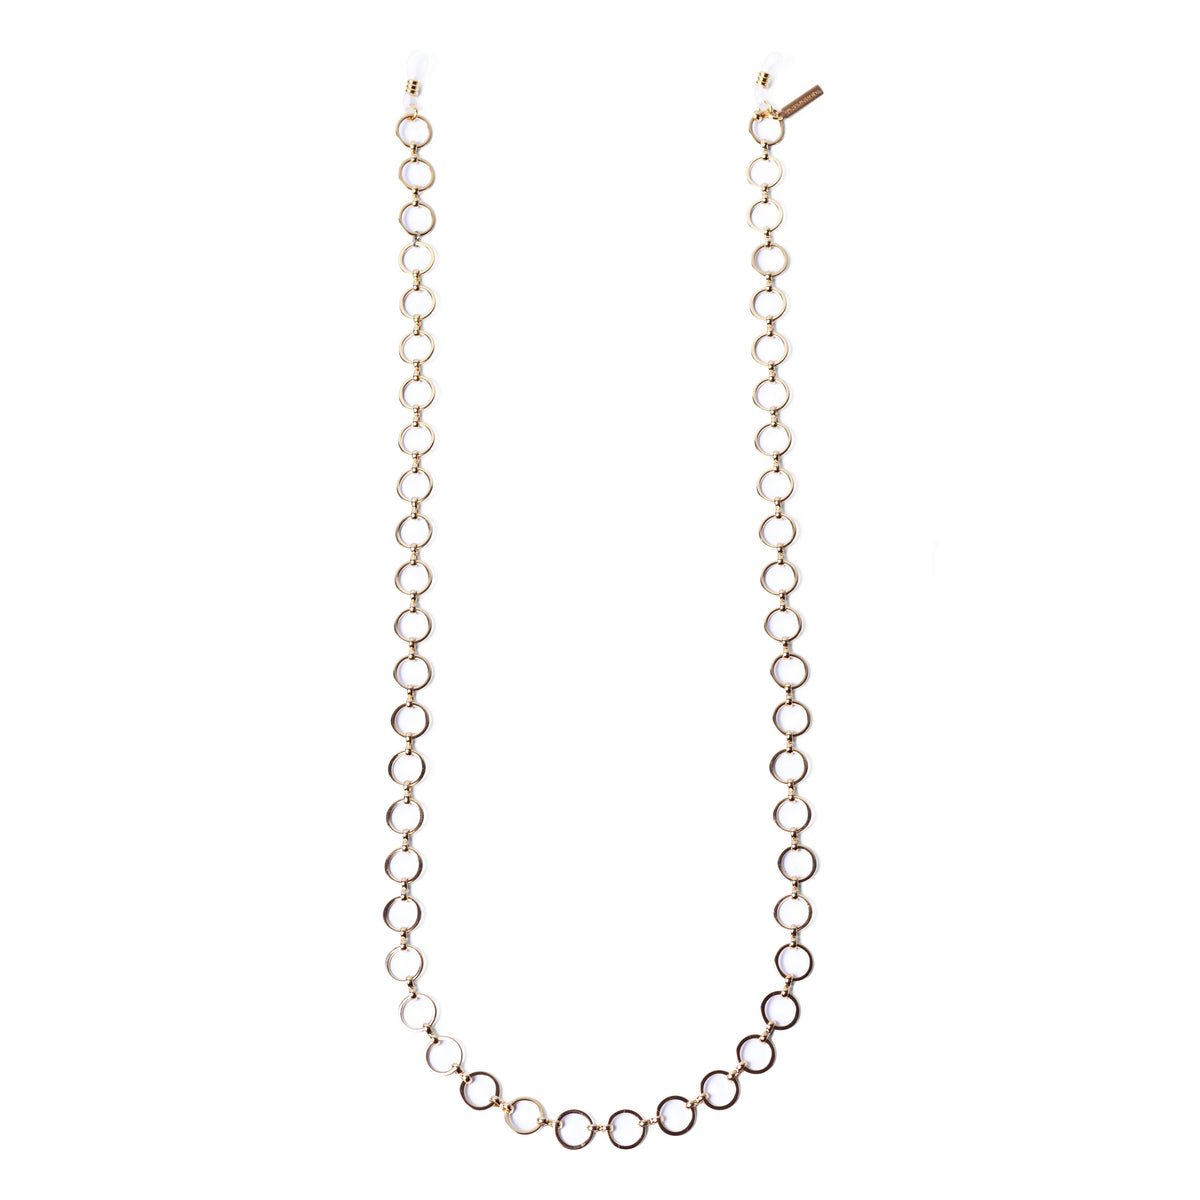 BANK ROLL SUNNIES CHAIN  SUNNIES CHAIN TNEMNRODA- NRODA